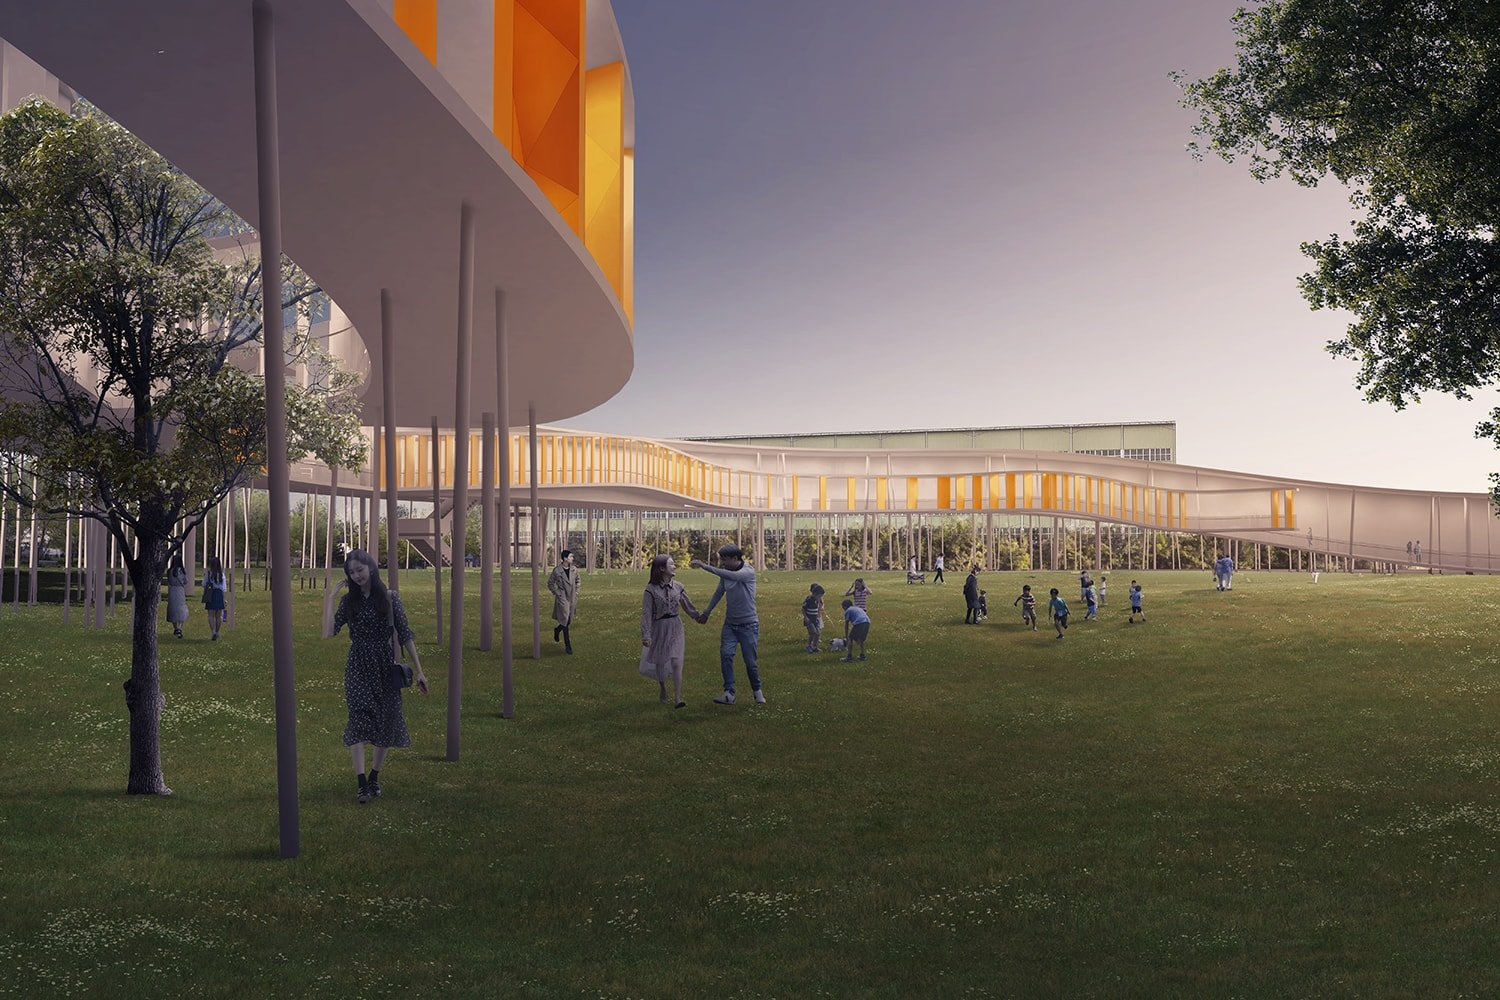 View from Memorial Park 3D Visualization: Heeseung Choi / A+U Lab